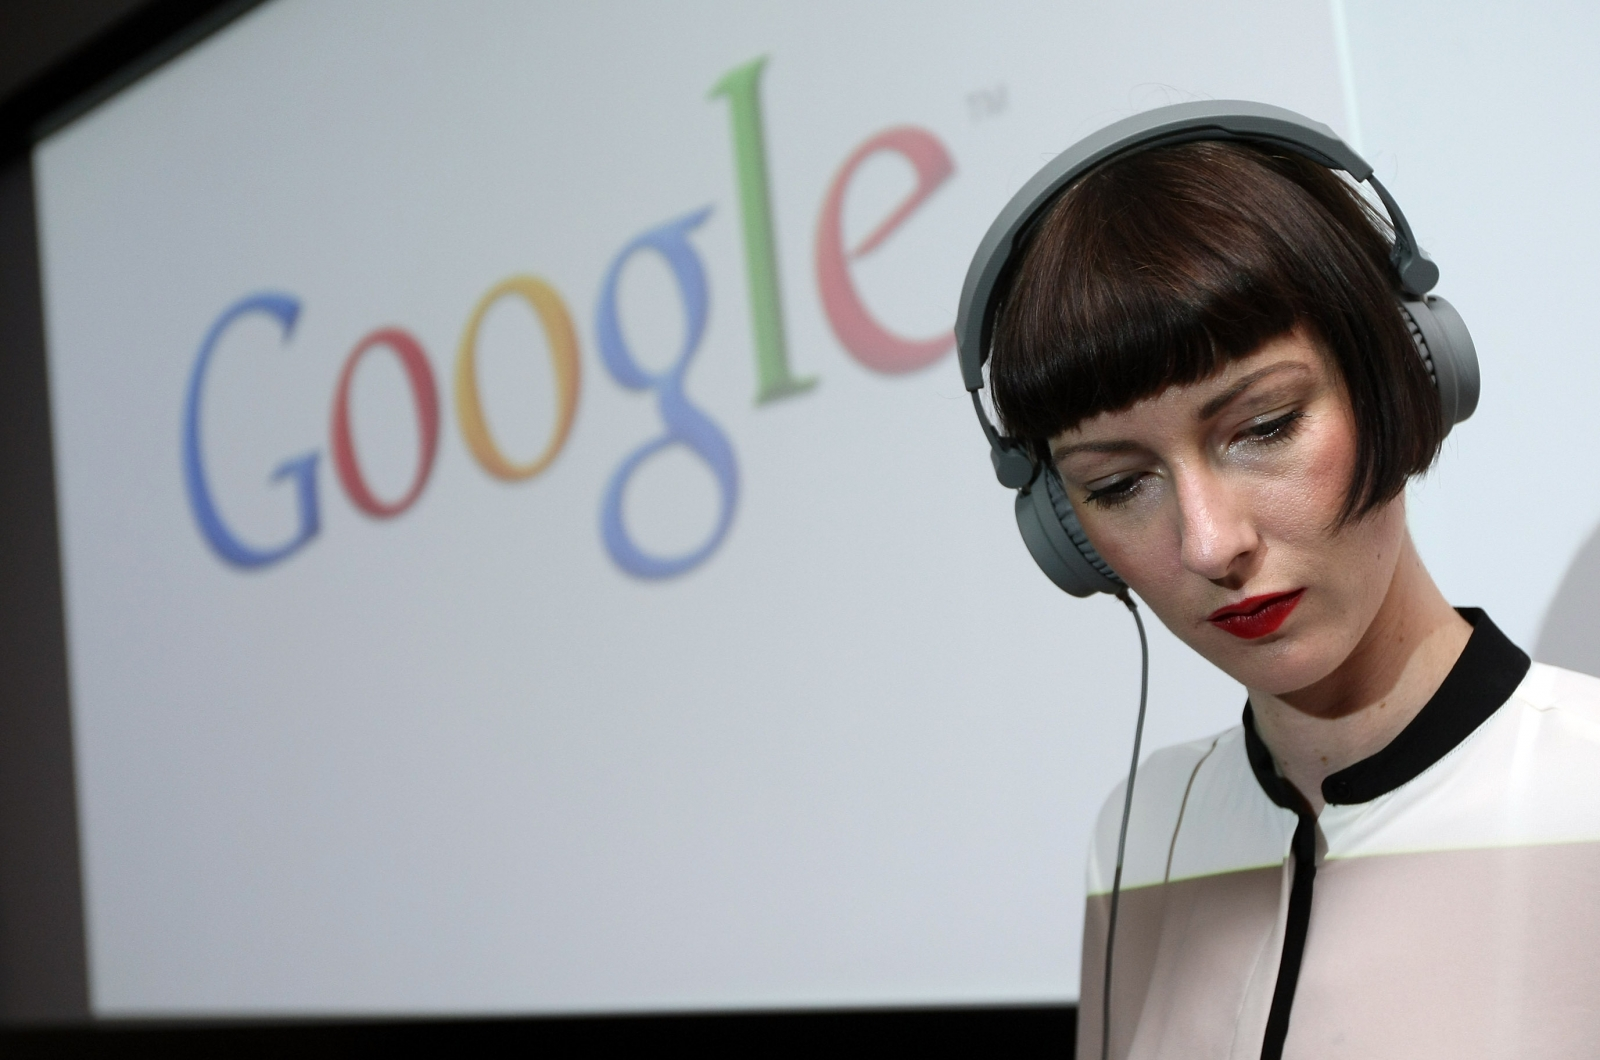 Google underpays women